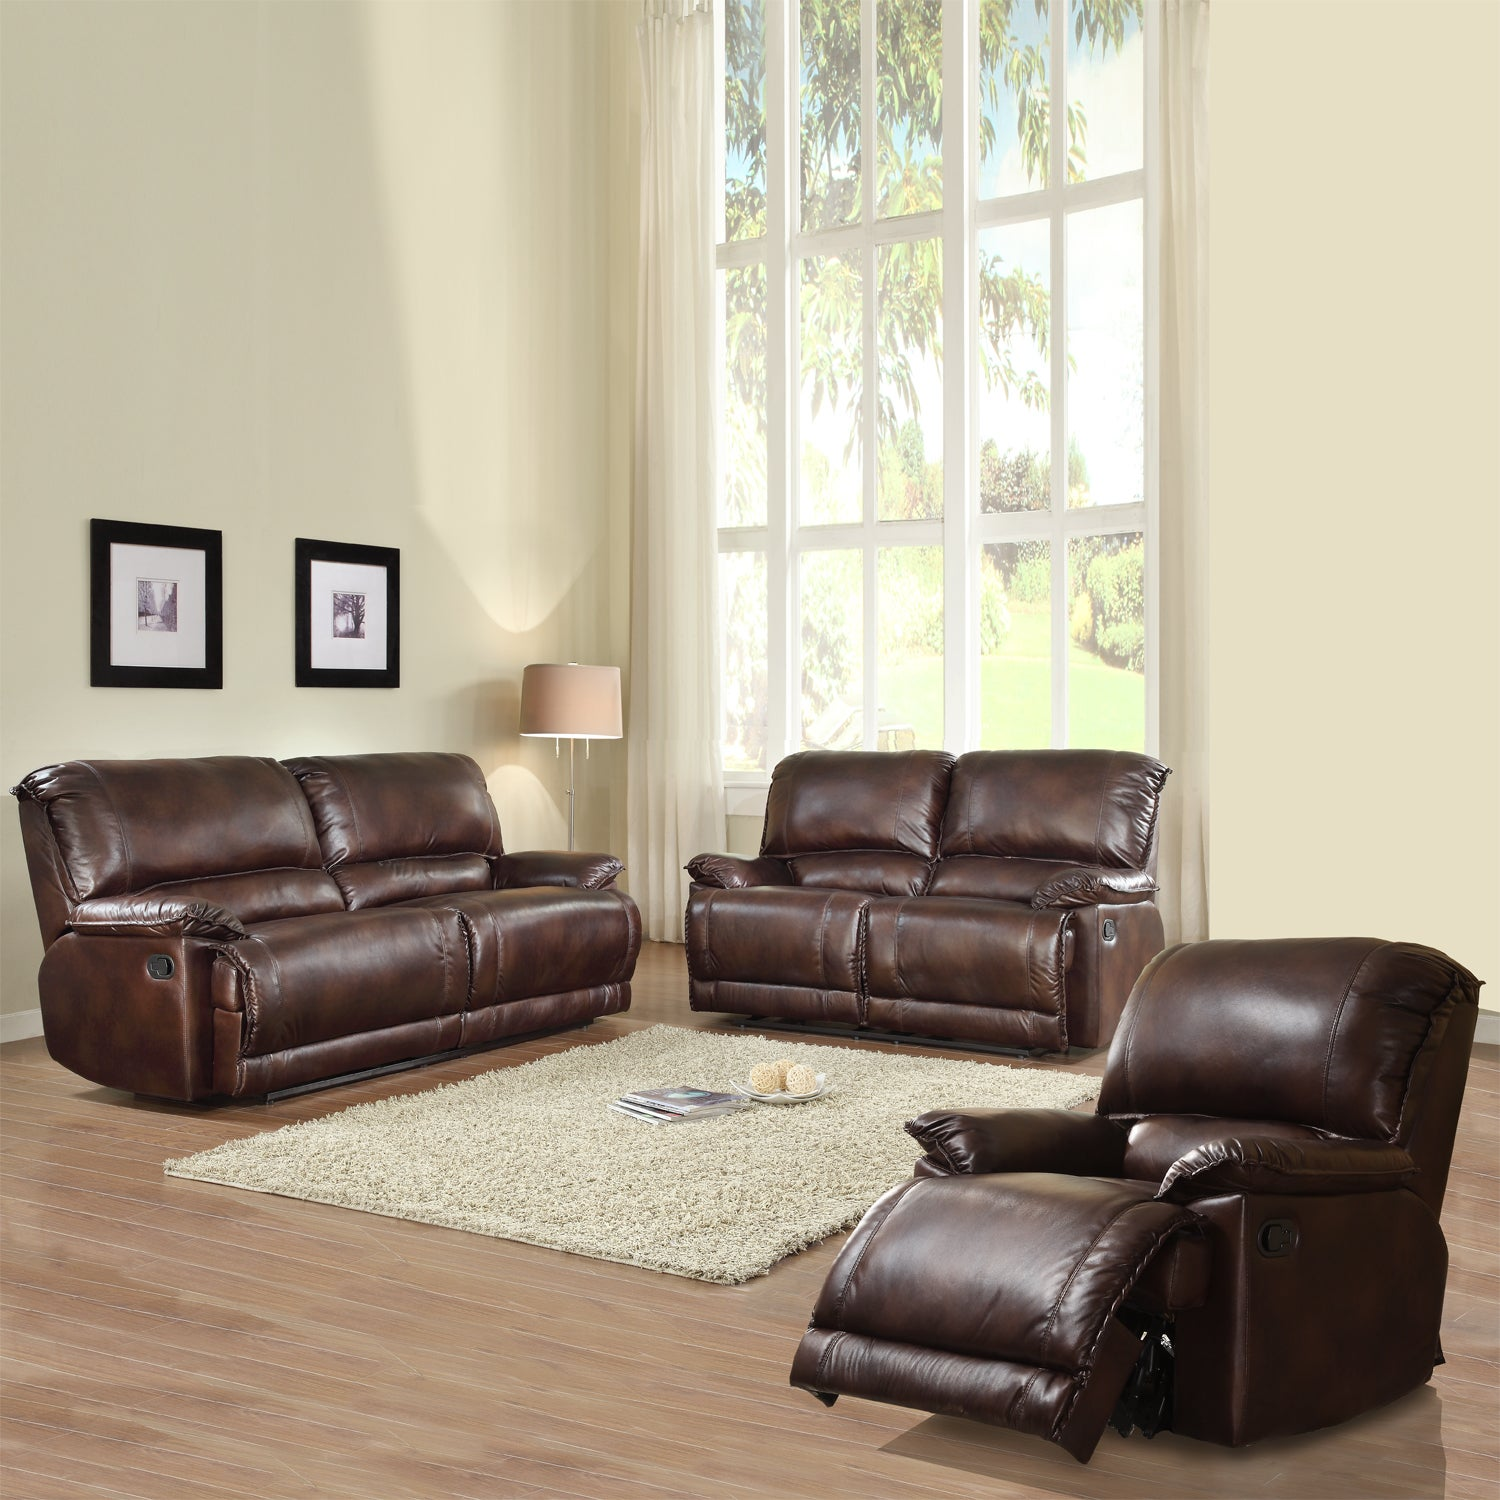 Dursley Reclining Living Room Set (Set of 3)